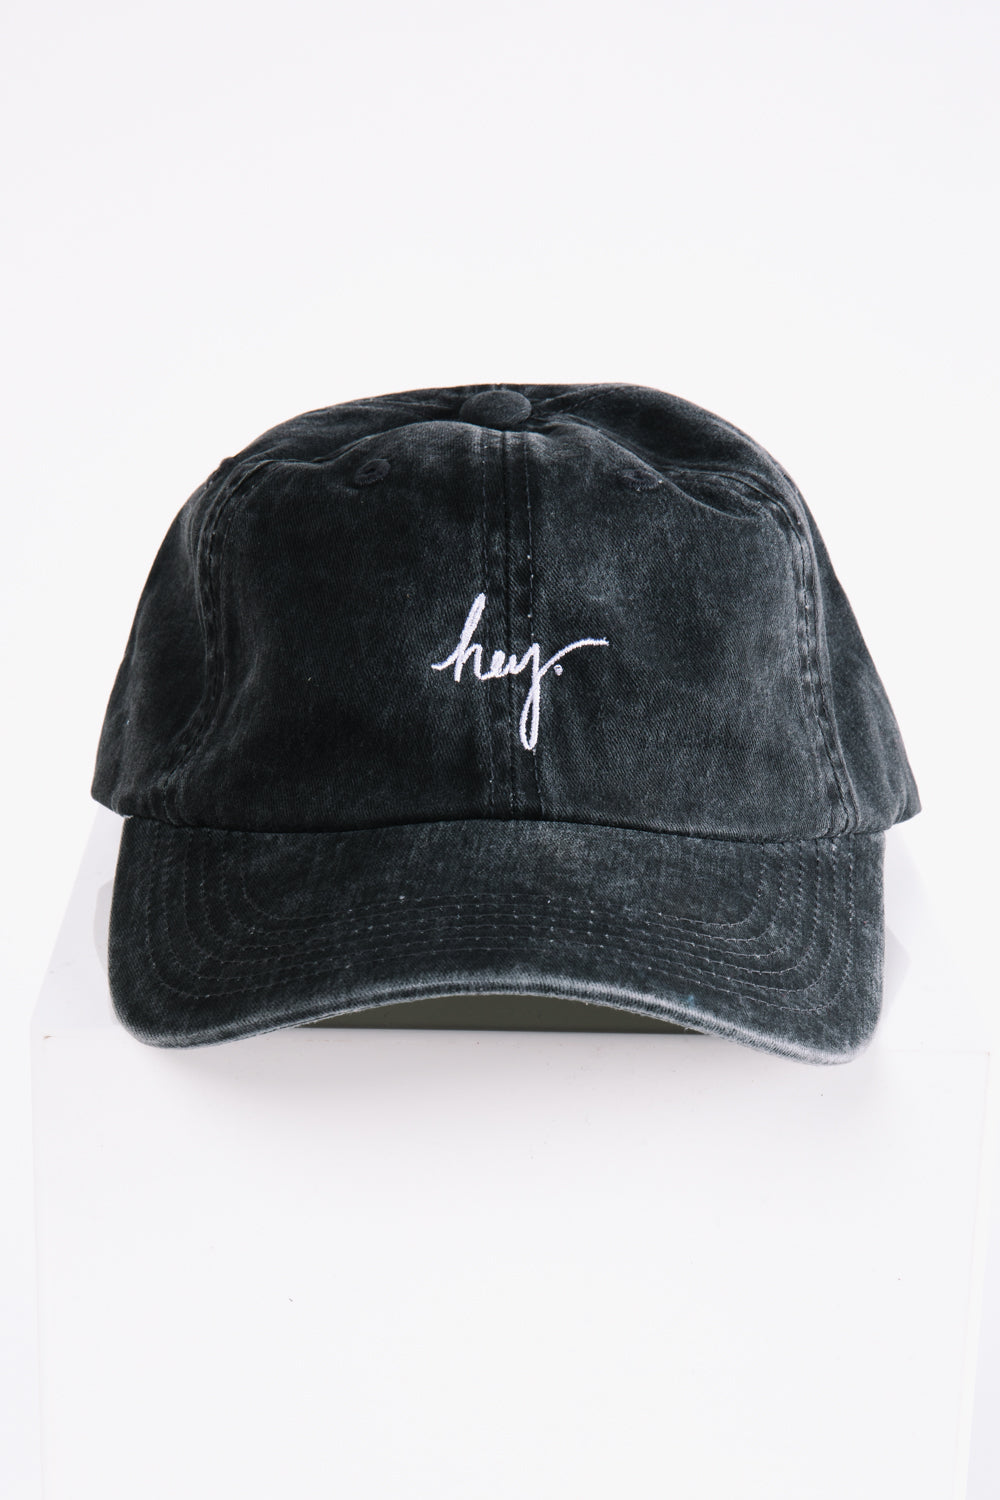 Piper & Scoot: The hey. Cap in Black